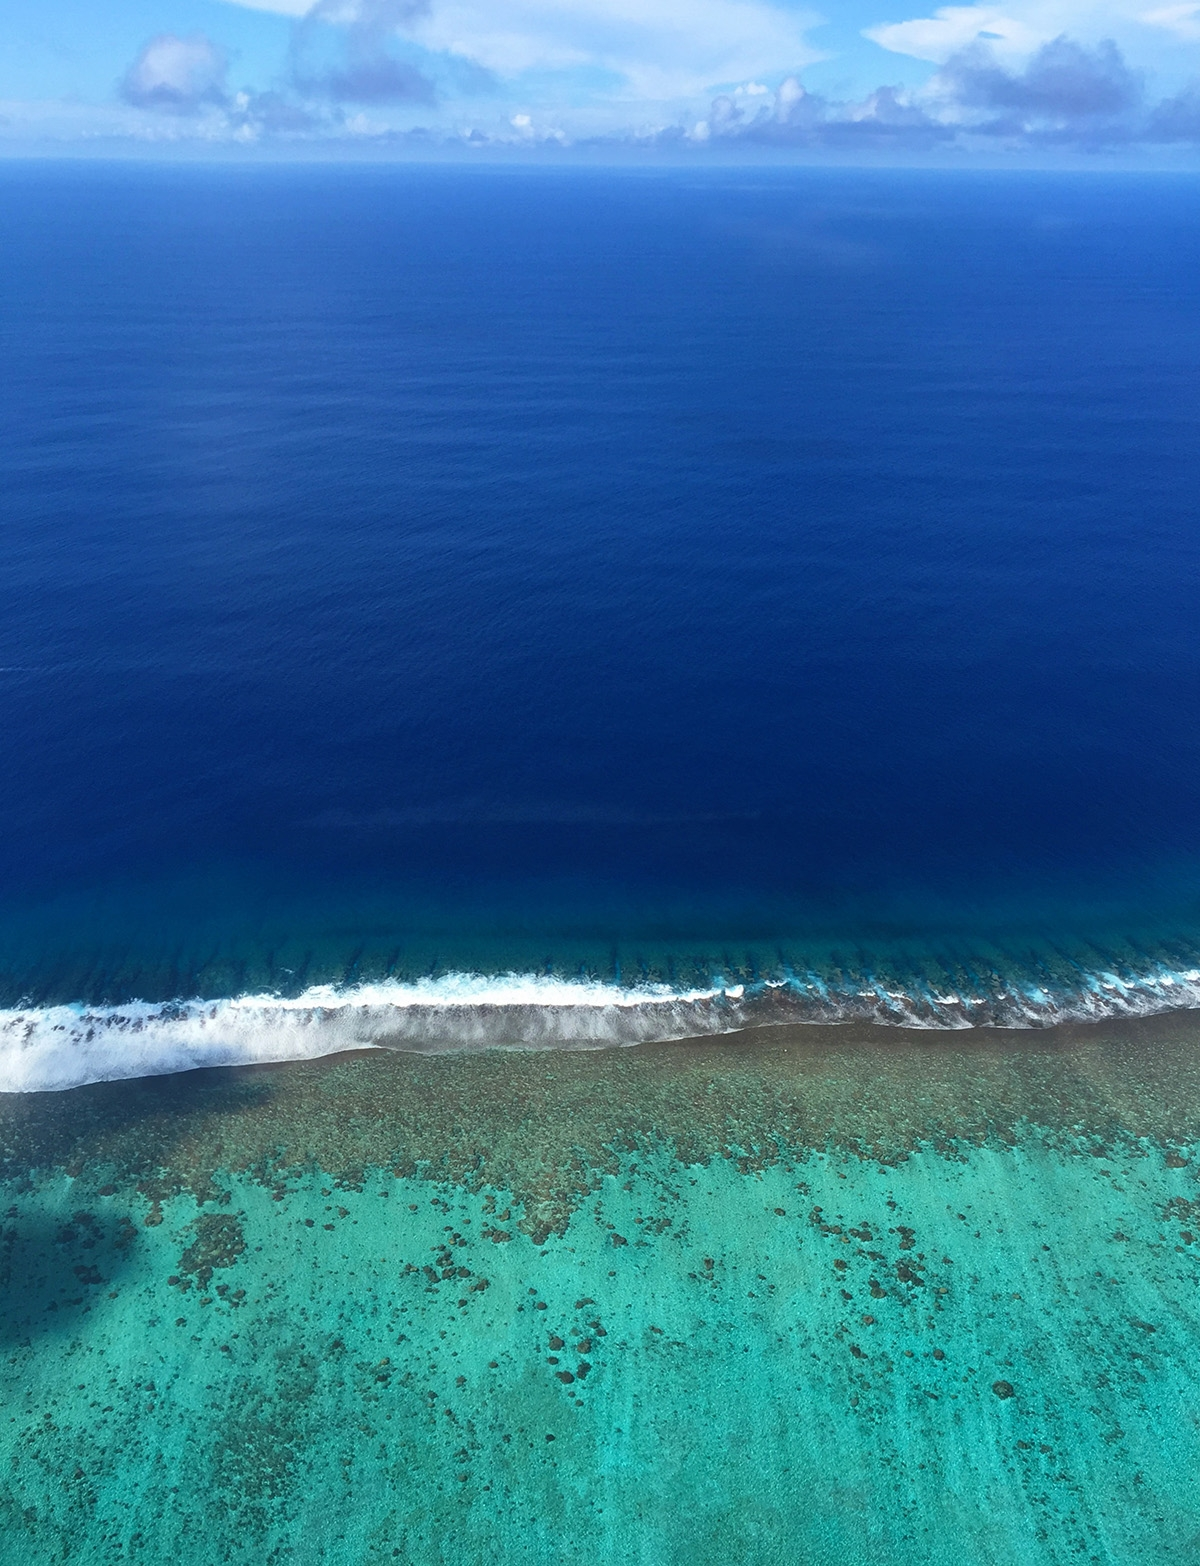 All the blues of the Bora Bora ocean from an aerial perspective